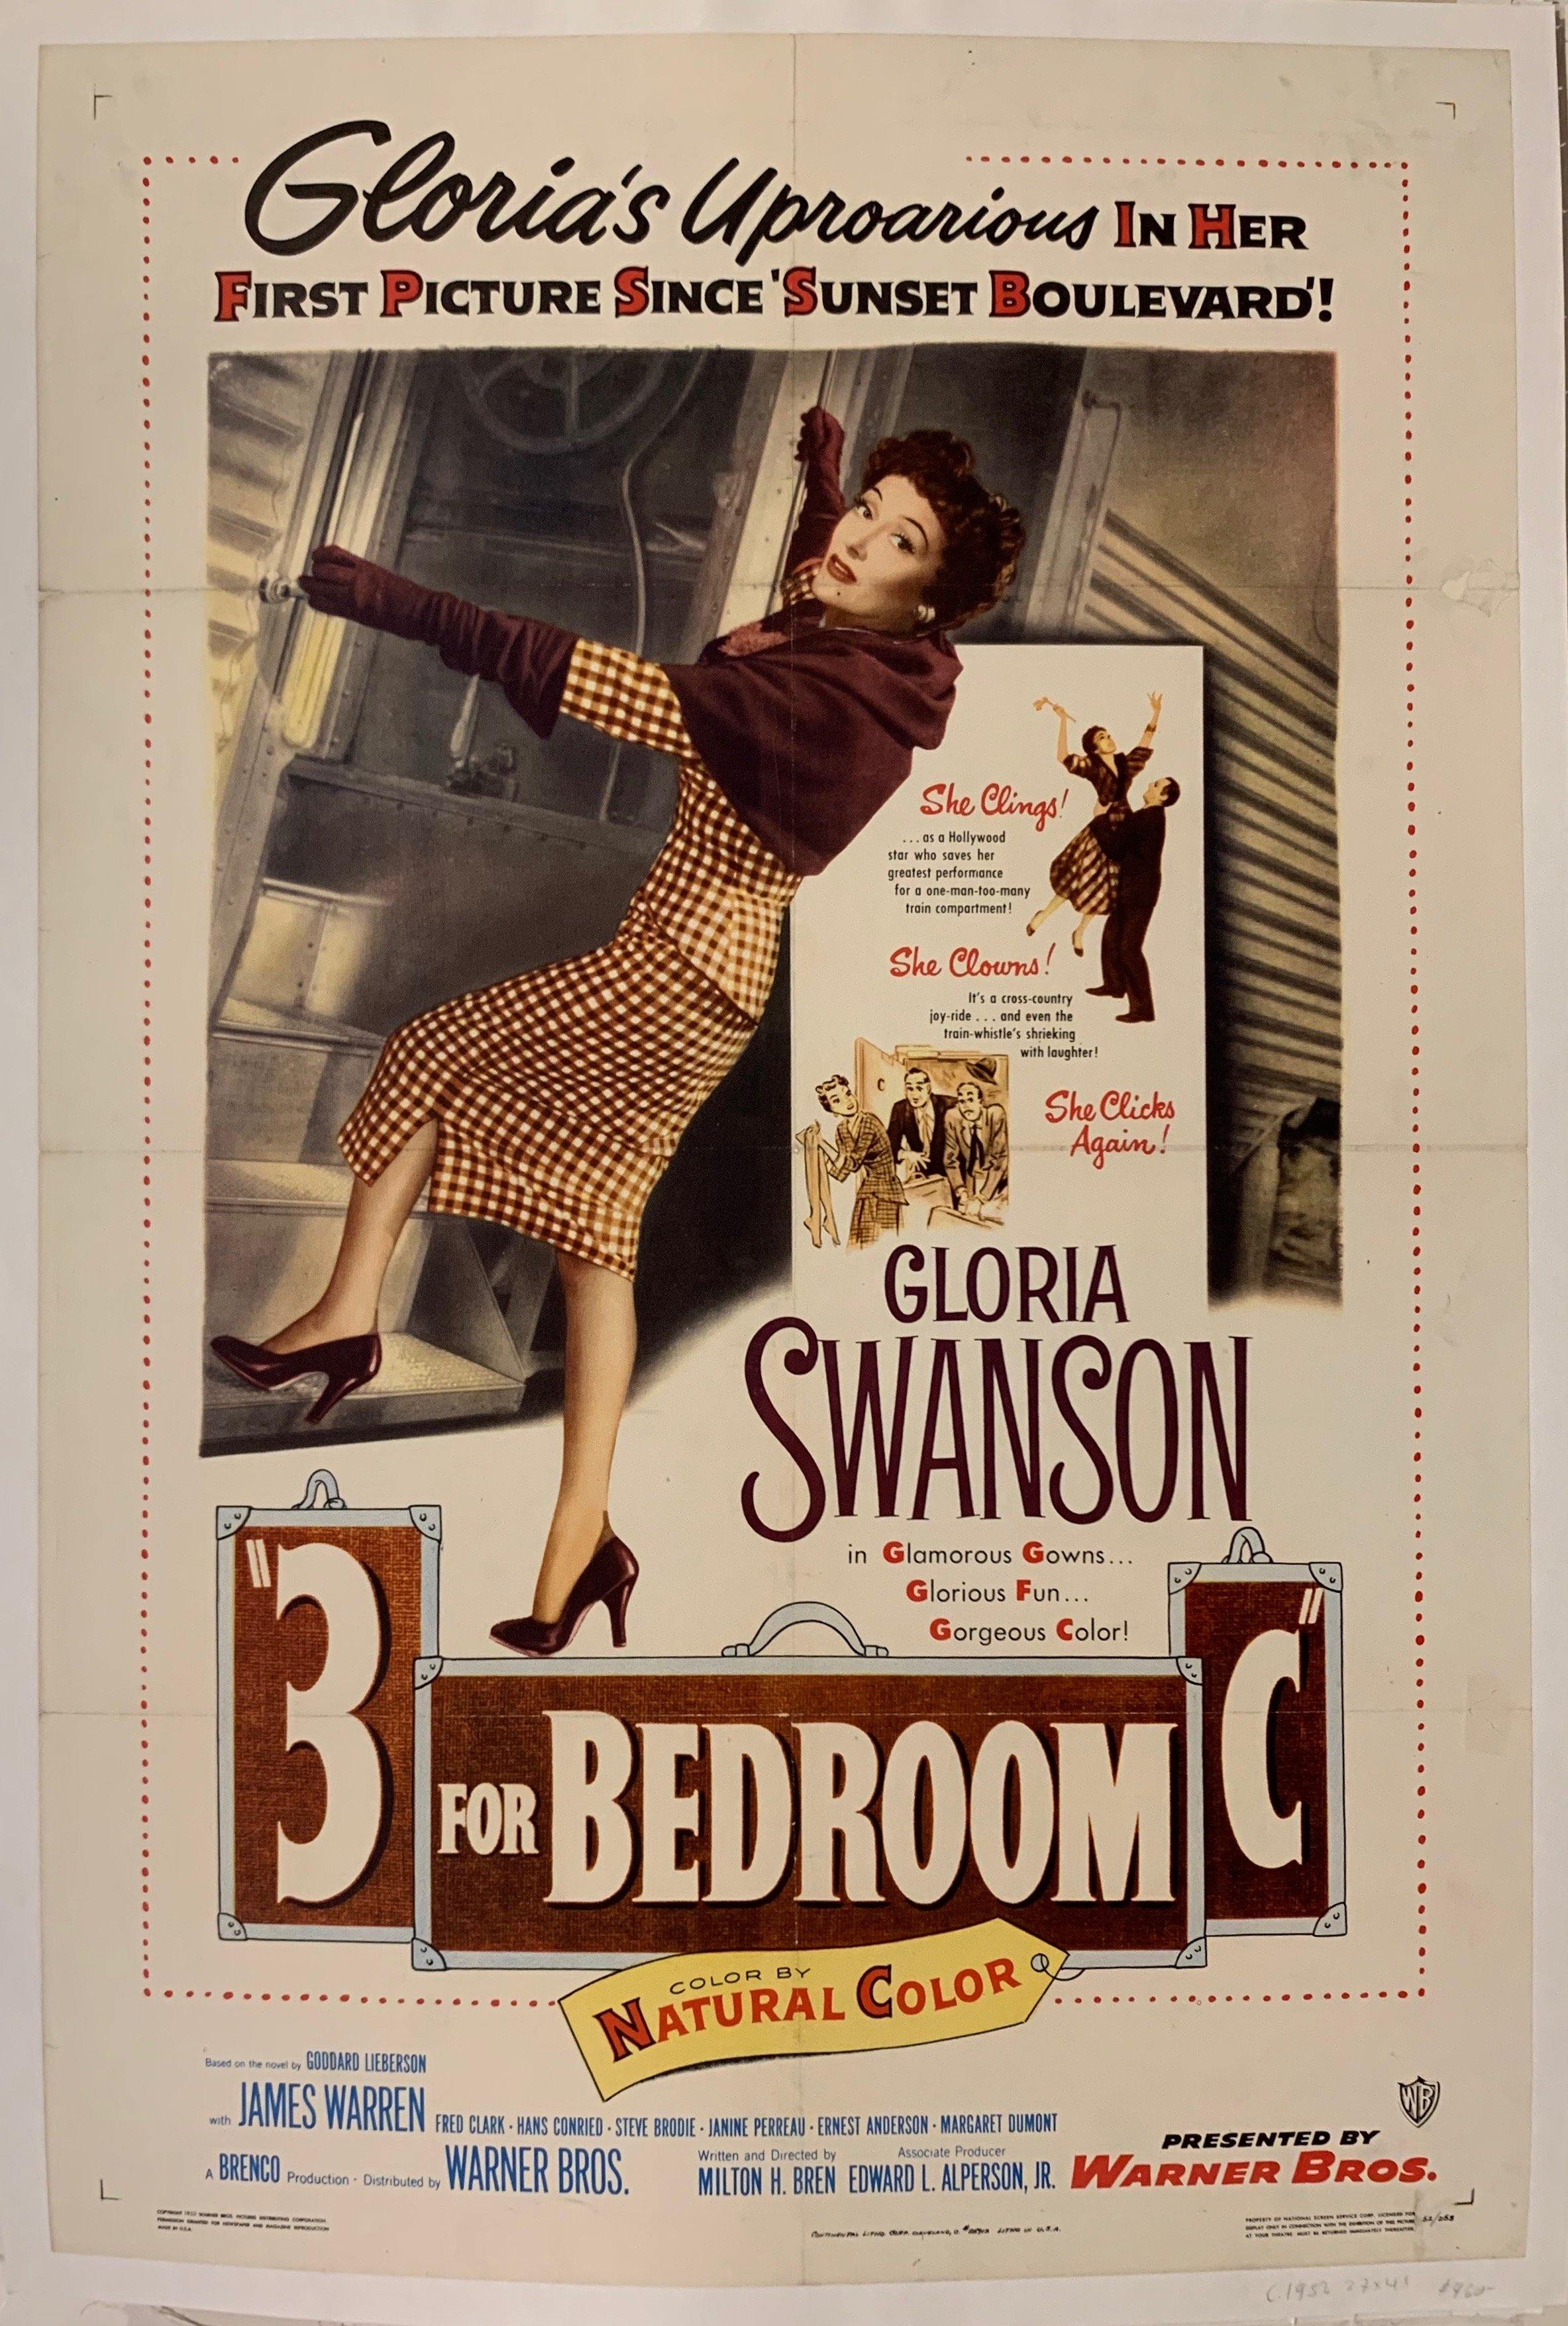 3 For Bedroom C Film Poster - Poster Museum